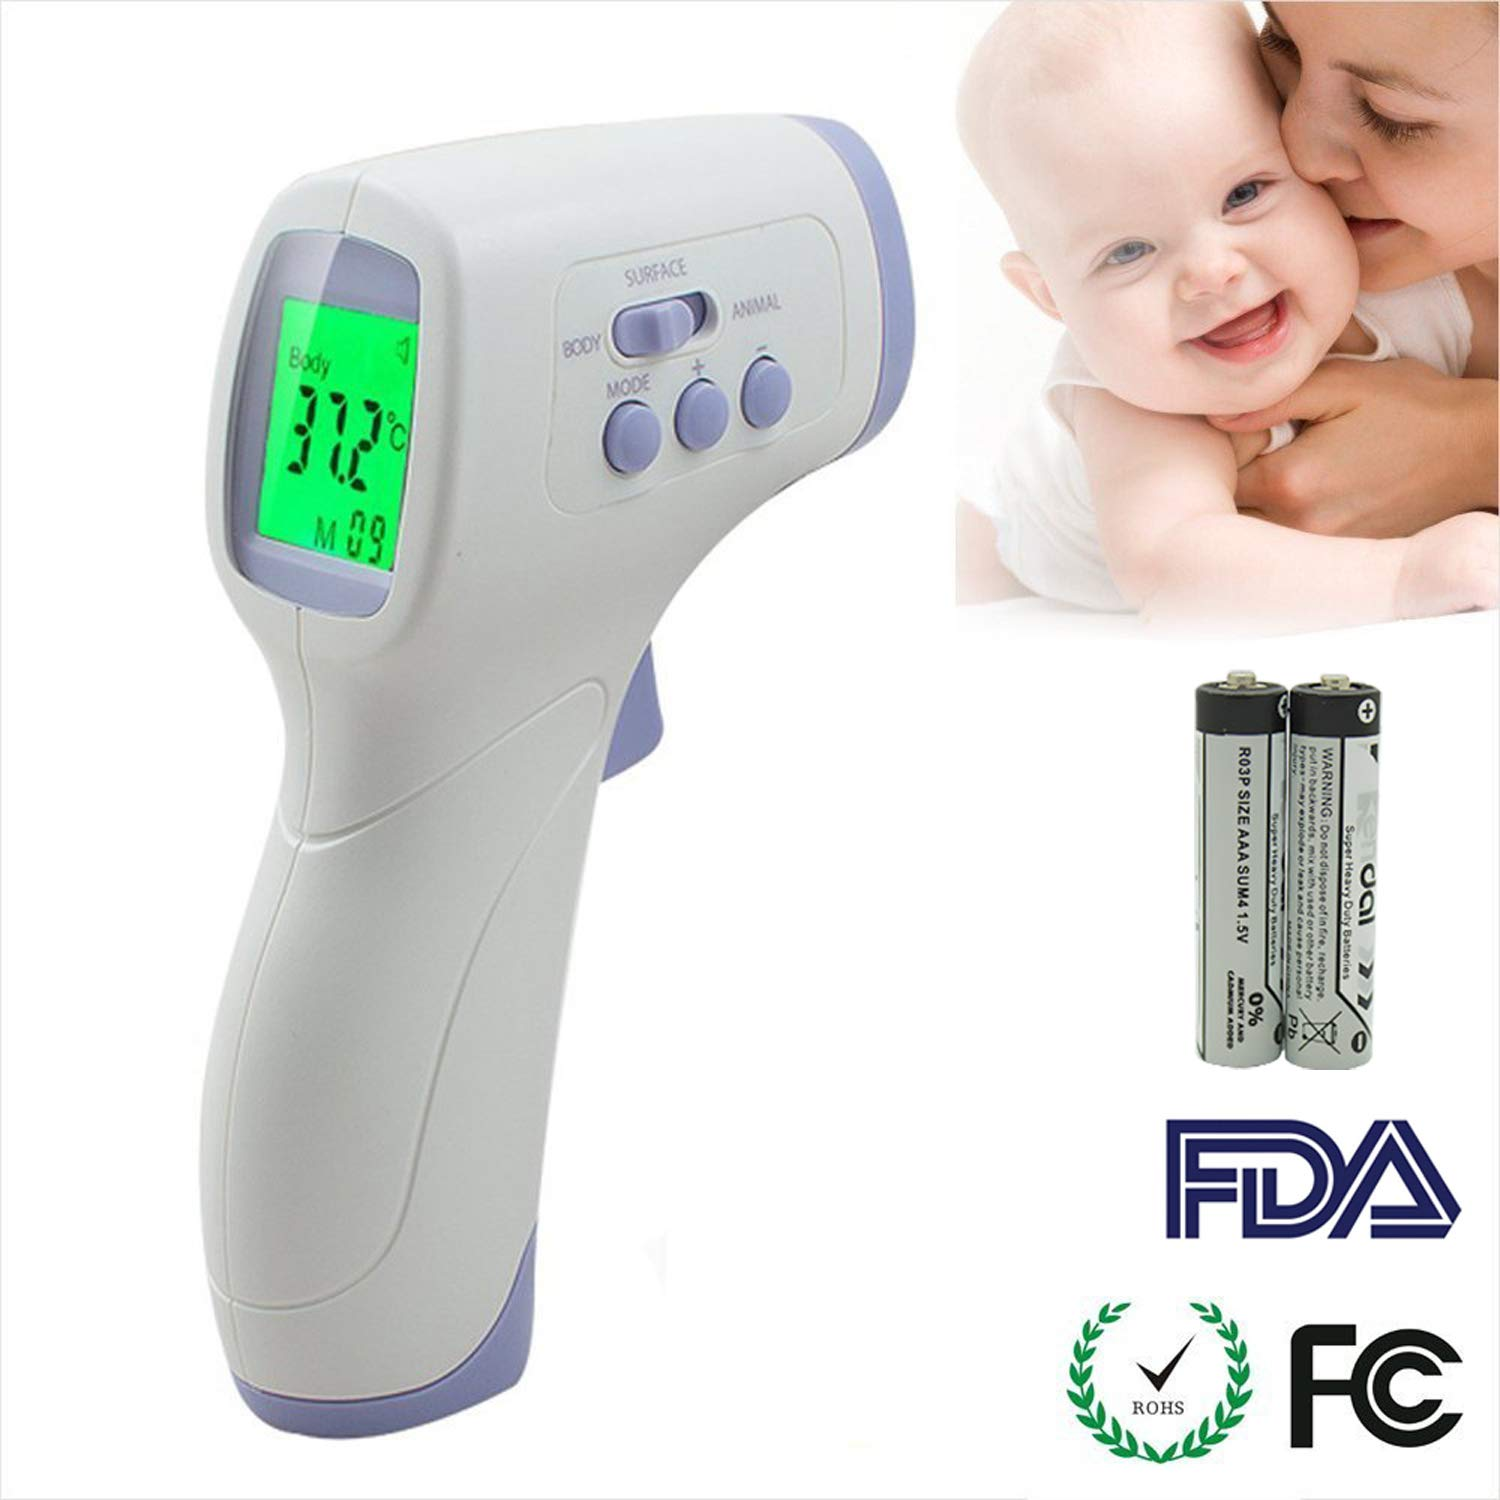 ANIKUV Forehead Digital Thermometer for Baby, Kids, Adults and Pets, Non-Contact Infrared Body Temperature Thermometer Accurate Fever Thermometer